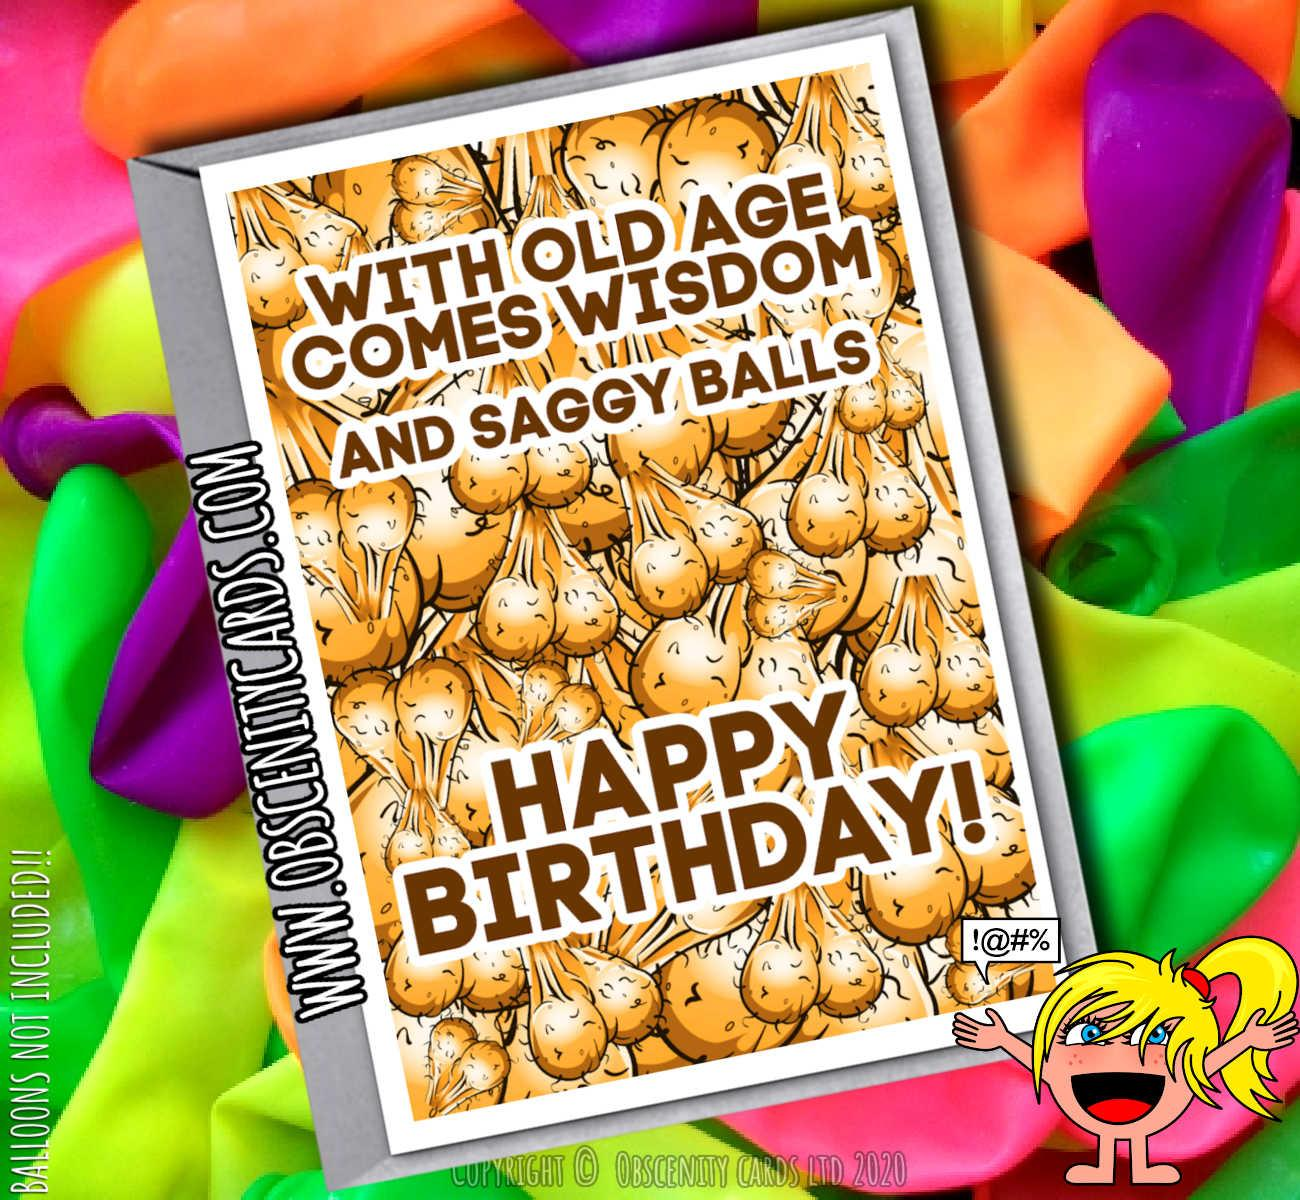 WITH OLD AGE COMES WISDOM, AND SAGGY BALLS BIRTHDAY CARD